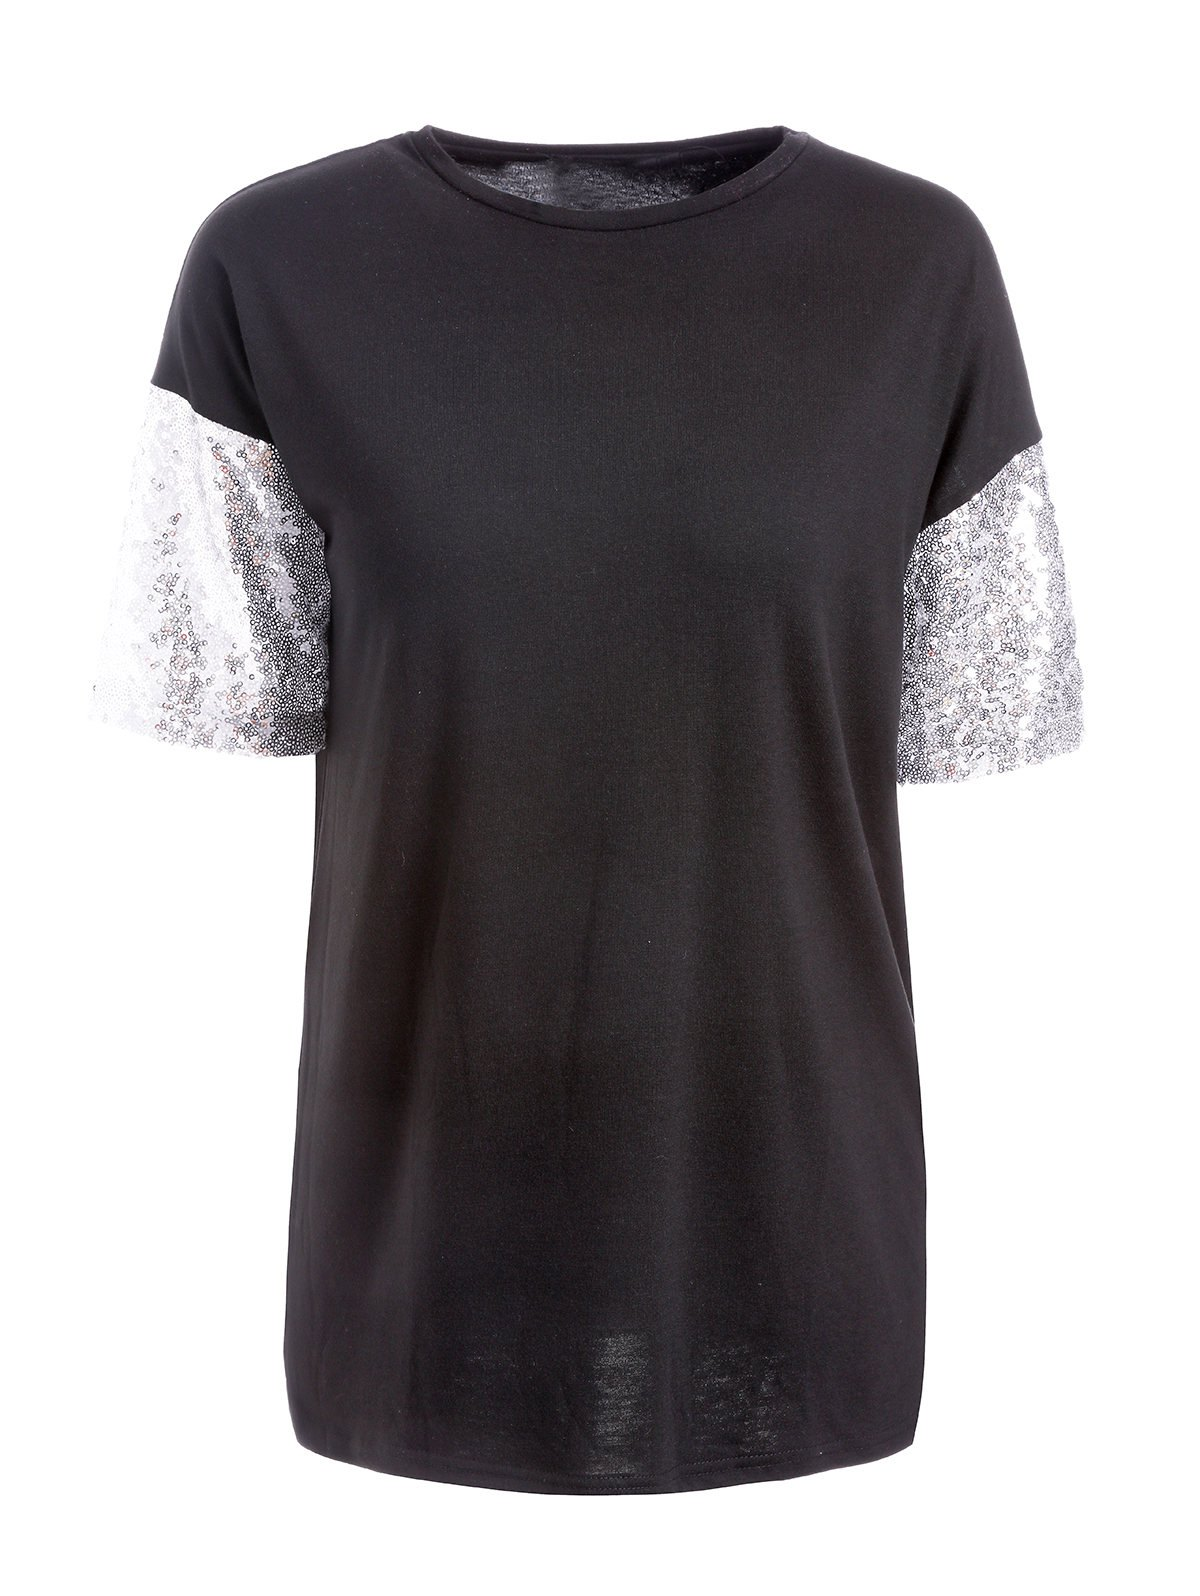 Casual Women's Round Neck Short Sleeve Sequined T-Shirt - BLACK XL